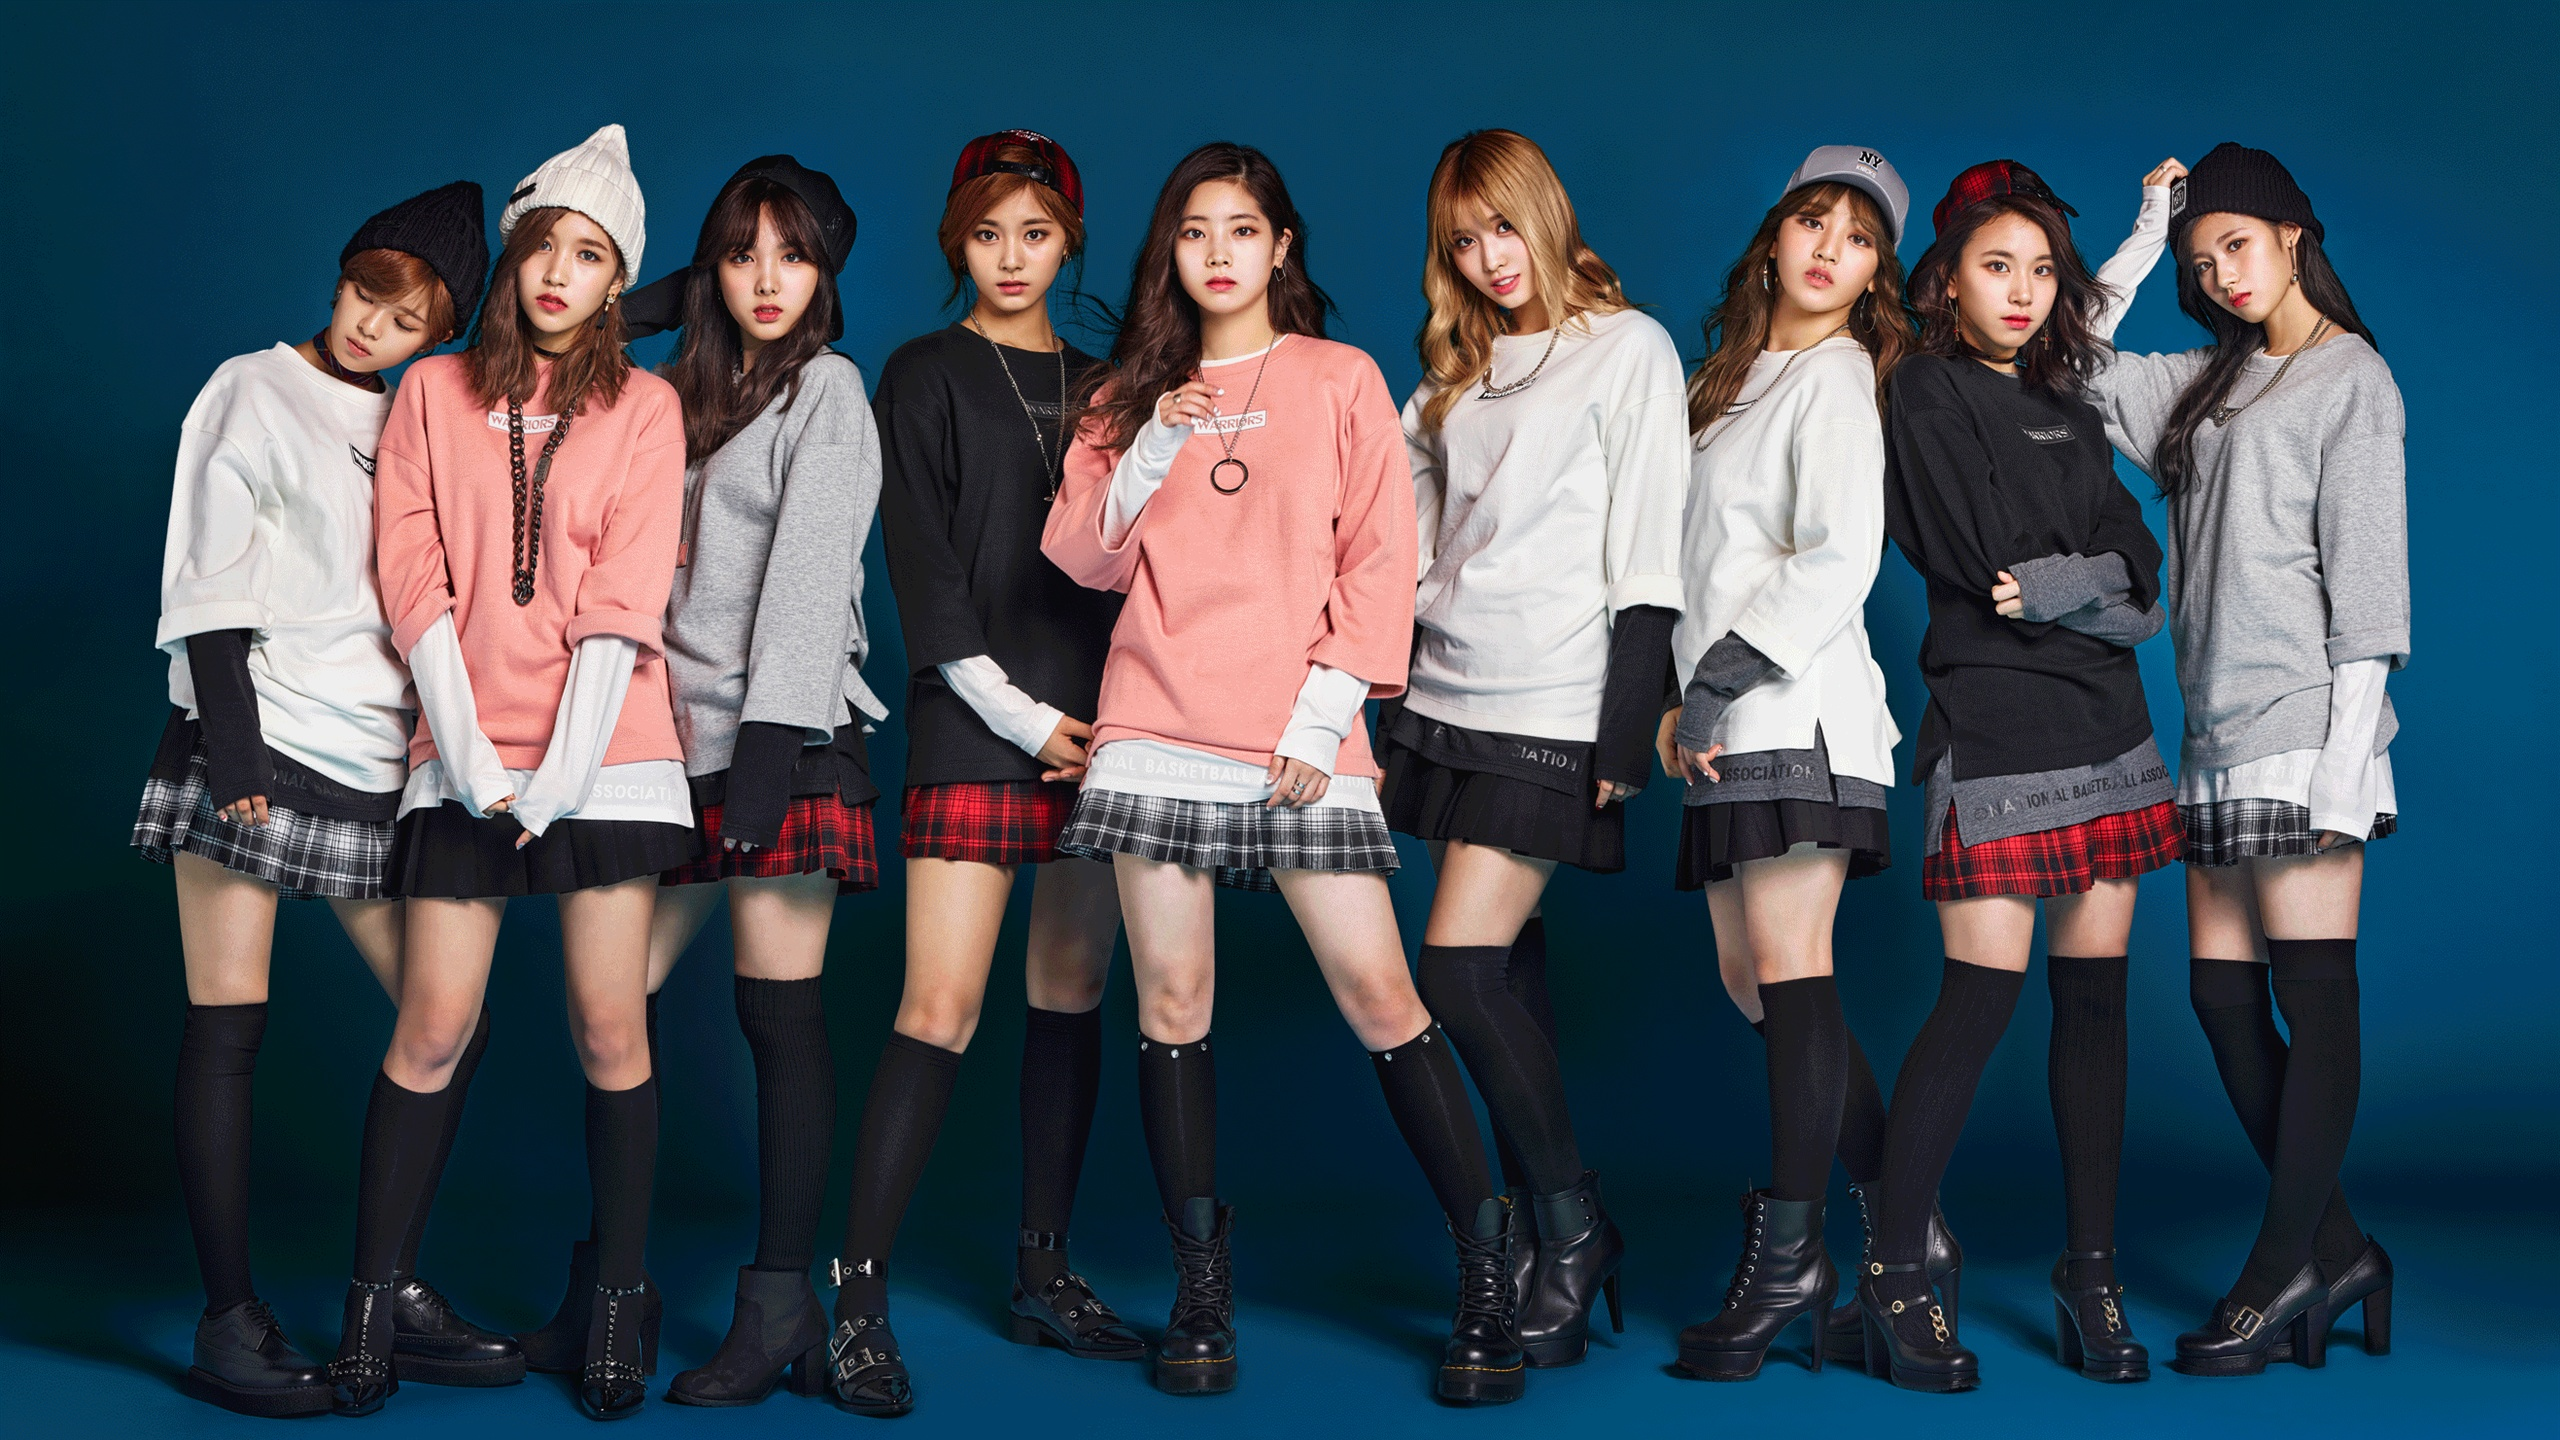 Wallpaper Twice Korean Music Girls 04 2560x1440 Qhd Picture Image